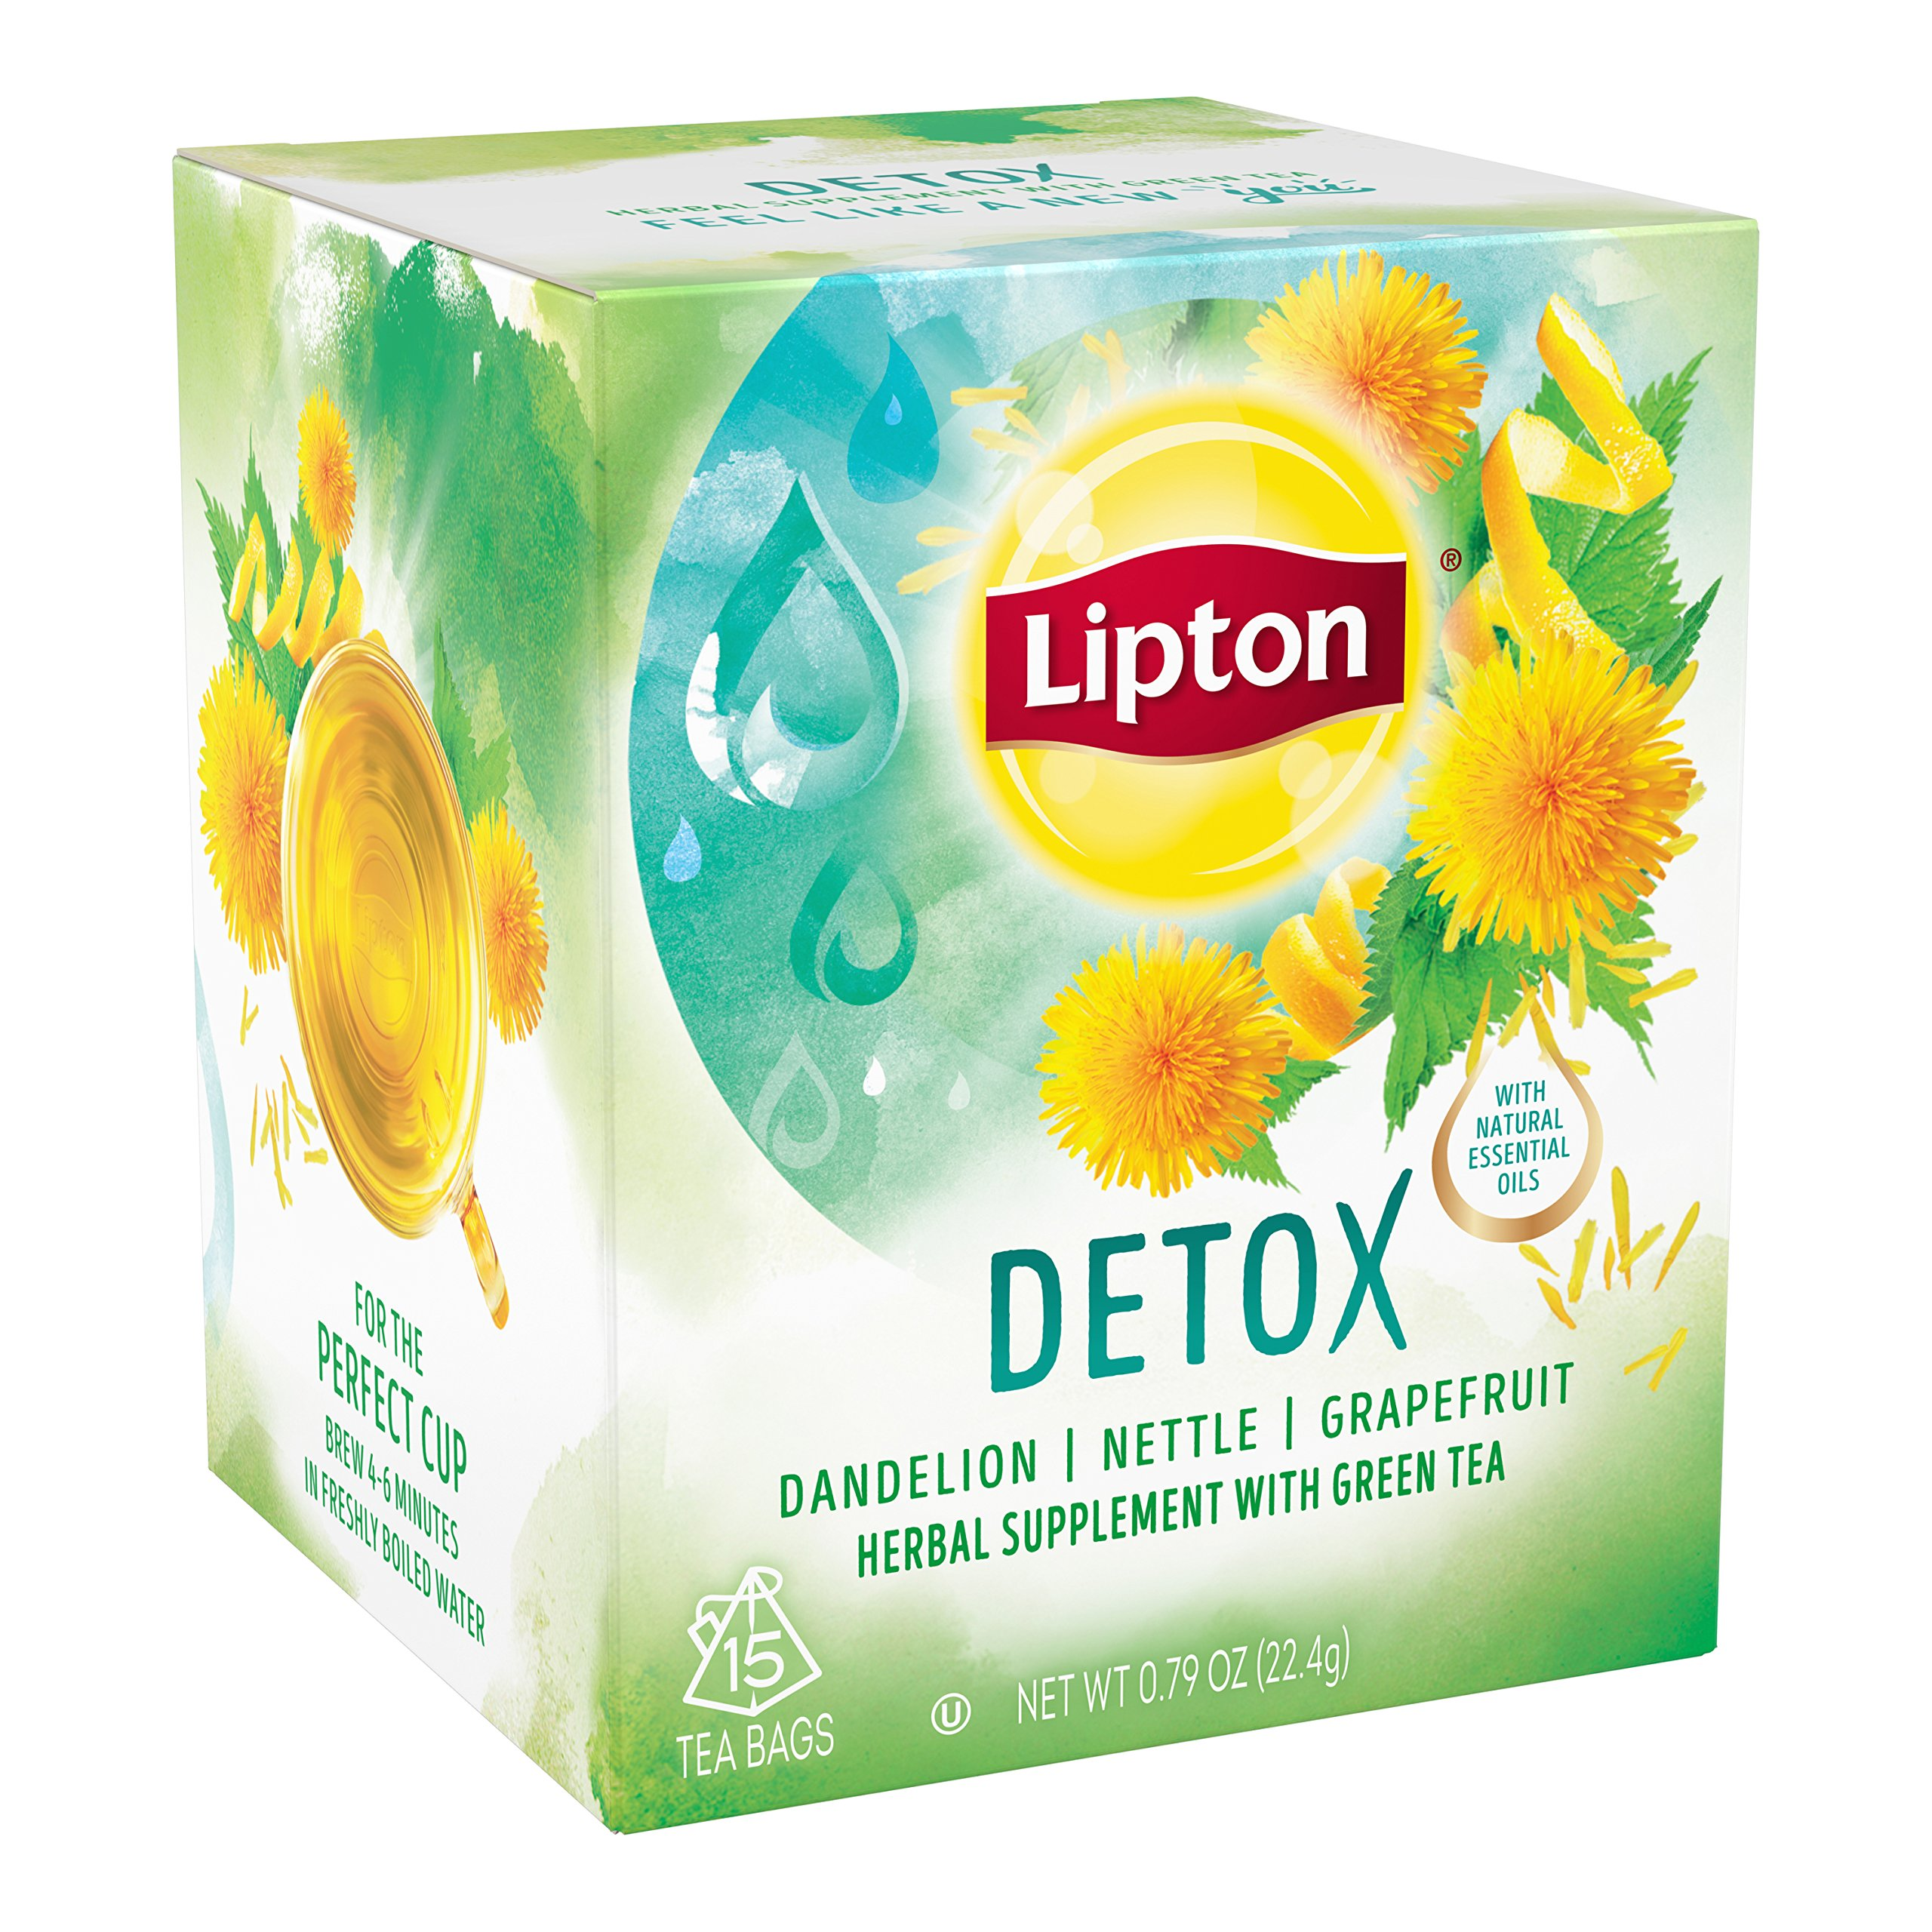 Lipton Herbal Supplement with Green Tea, Detox 15 ct, Pack of 4 by Lipton (Image #4)